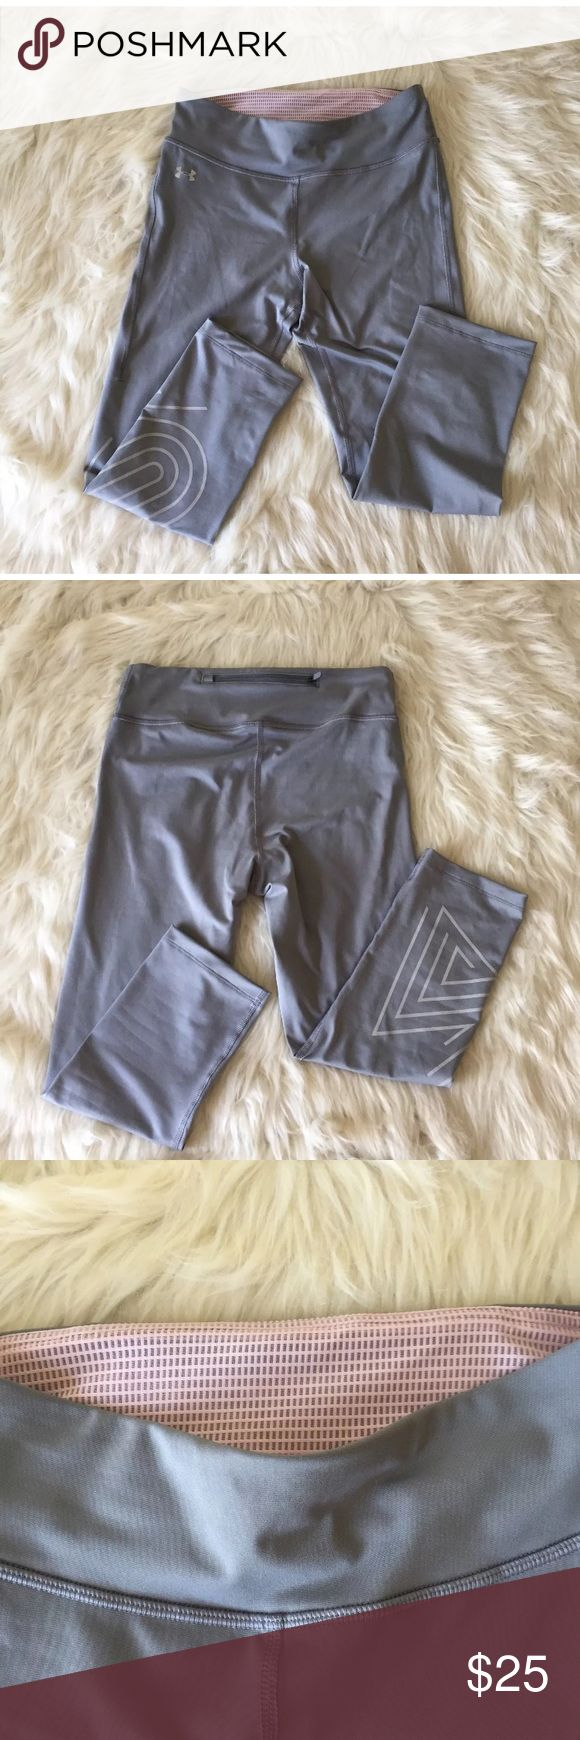 Women's medium gray athletic Under Armour tights Gray and white reflective Under Armour athletic tights. Size Medium women's. Pocket it back waist band top. In excellent condition Under Armour Pants Track Pants & Joggers